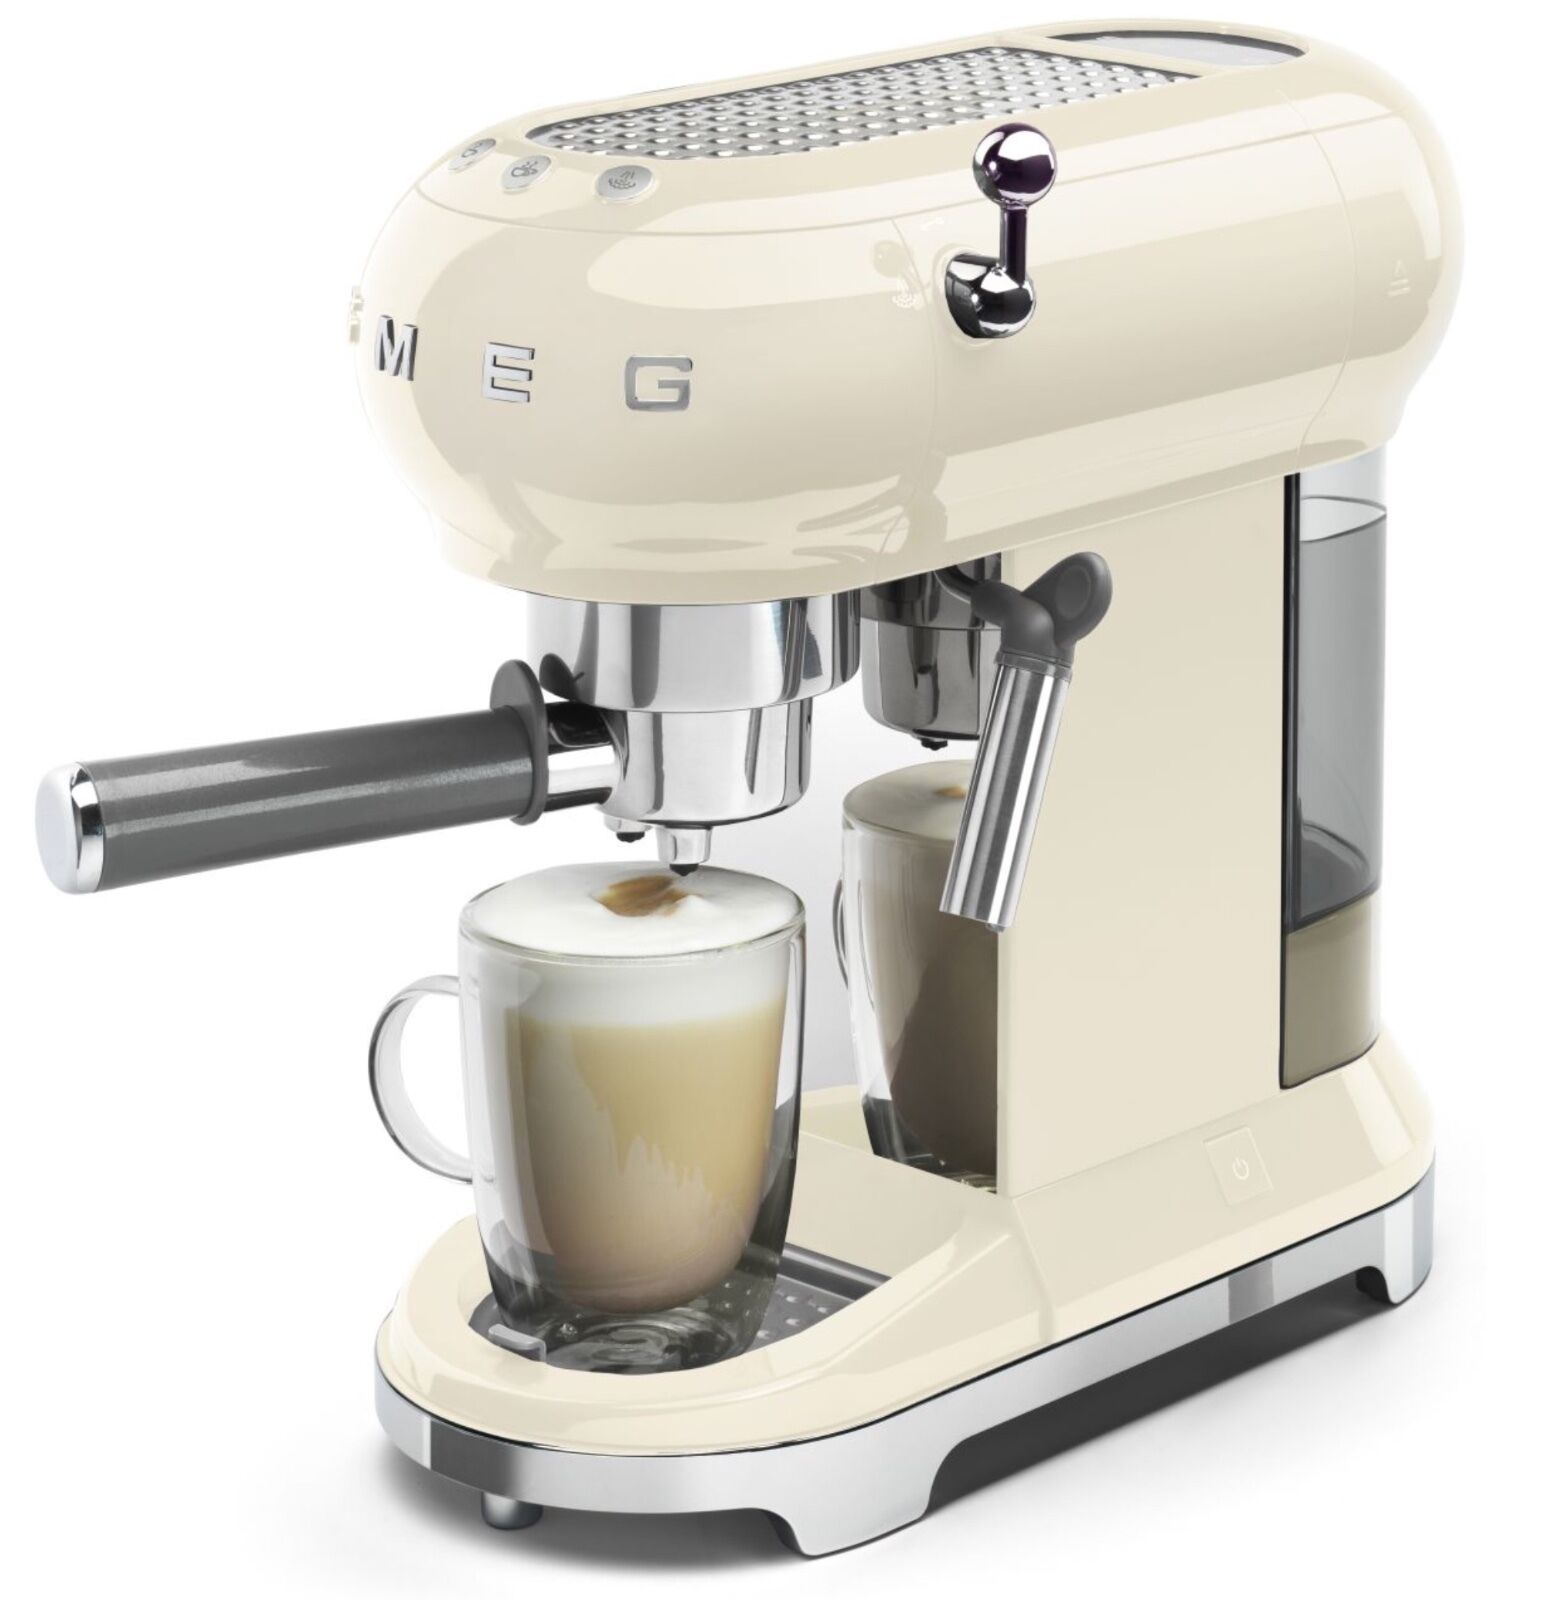 Smeg espresso coffee maker machine manual retro cappuccino New coffee machine